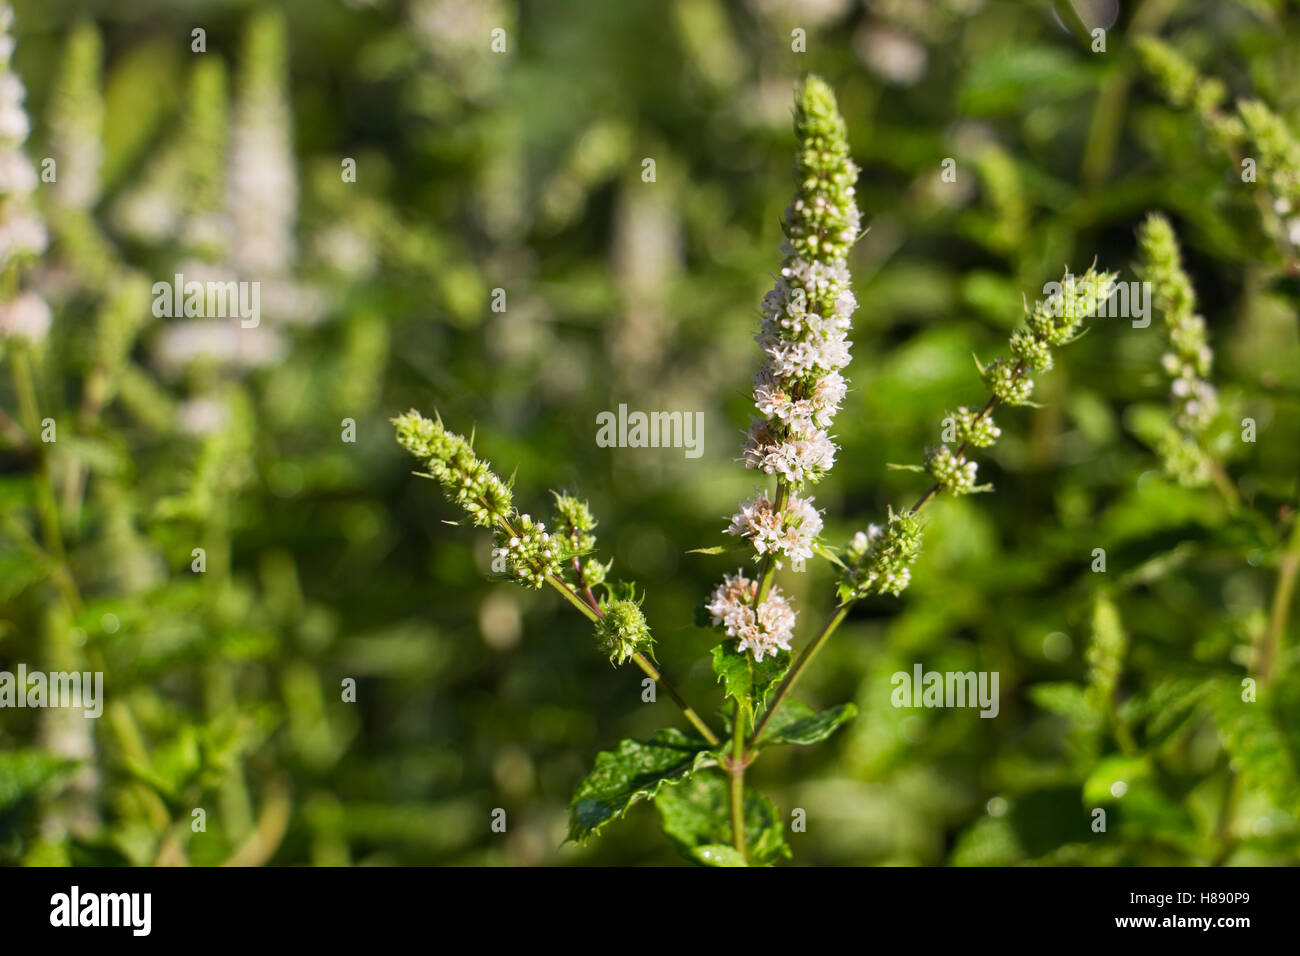 August flowering white flower stock photos august flowering white white flowers of a mint plant in august uk stock image mightylinksfo